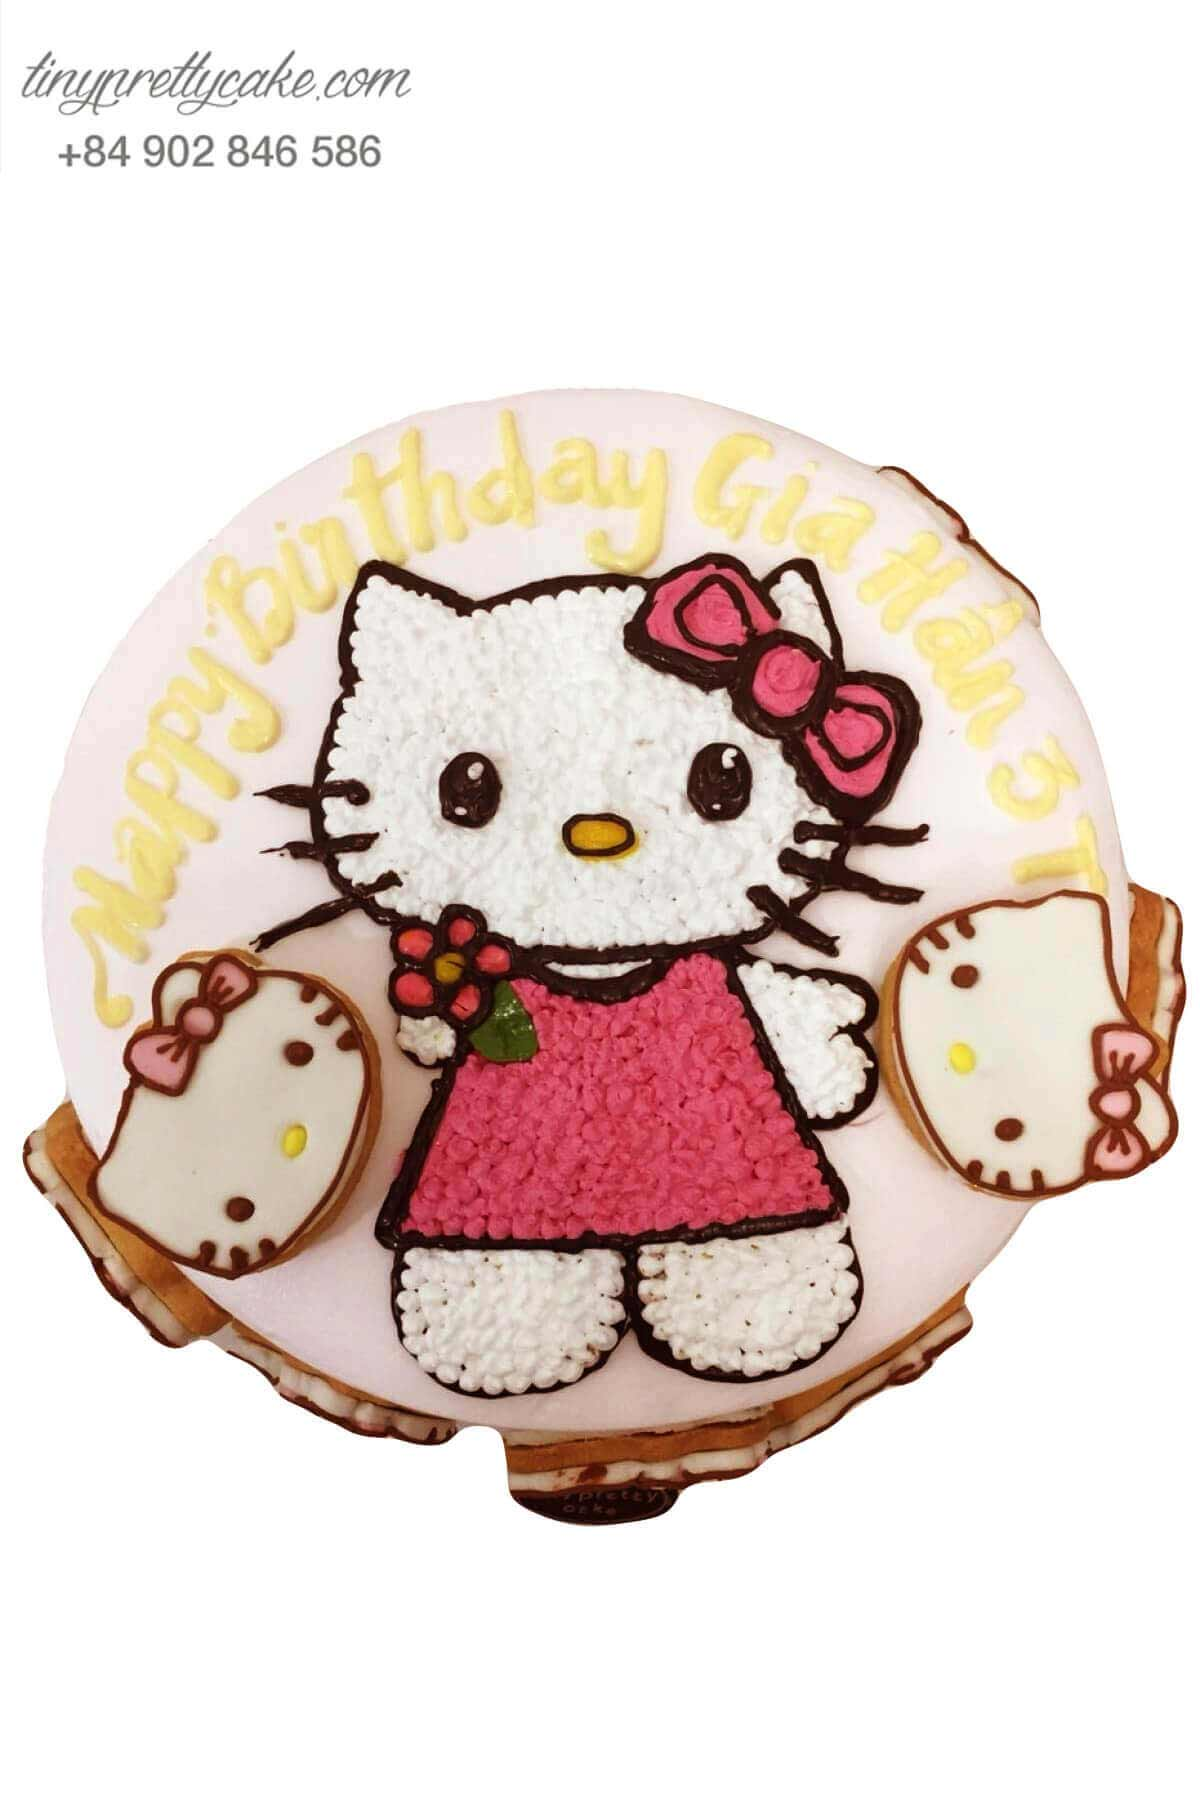 bánh kem Hello Kitty